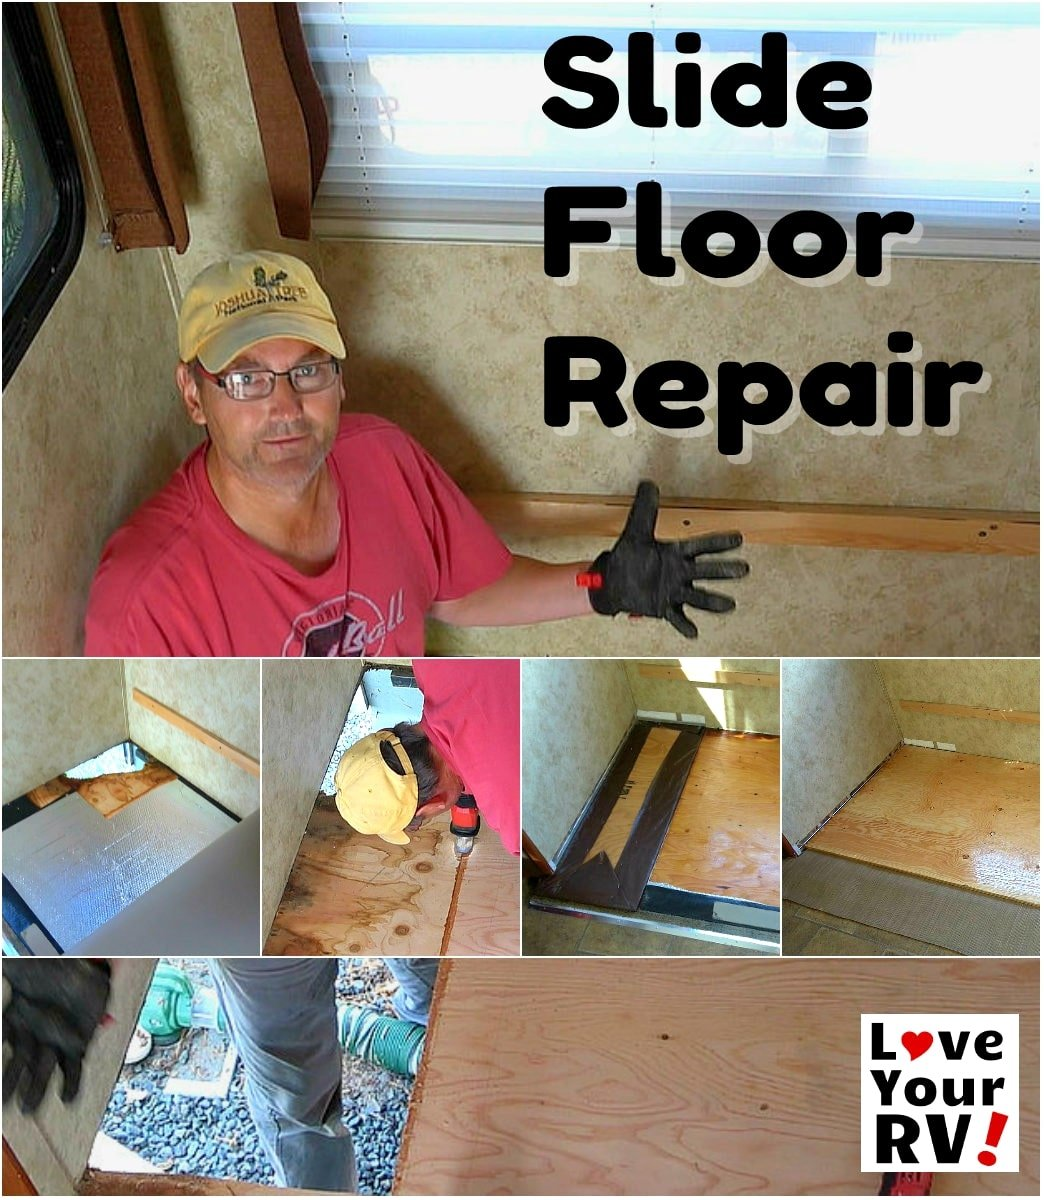 Rotted Rv Slide Out Floor Repair Fixed Manufacturer Flaw